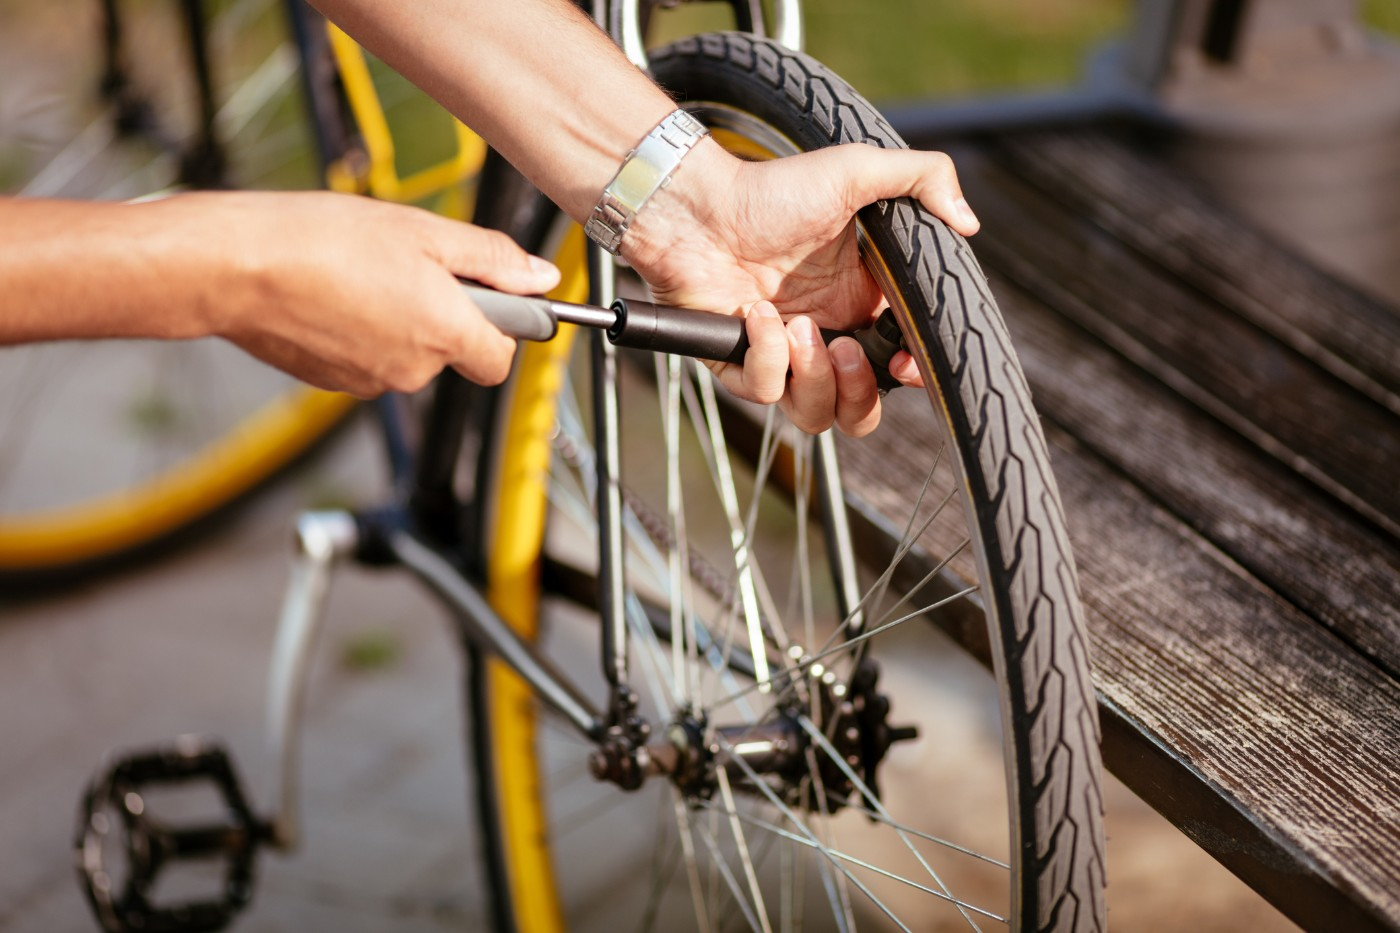 https://tickertapecdn.tdameritrade.com/assets/images/pages/md/Inflating a bike tire: Personal inflation rate